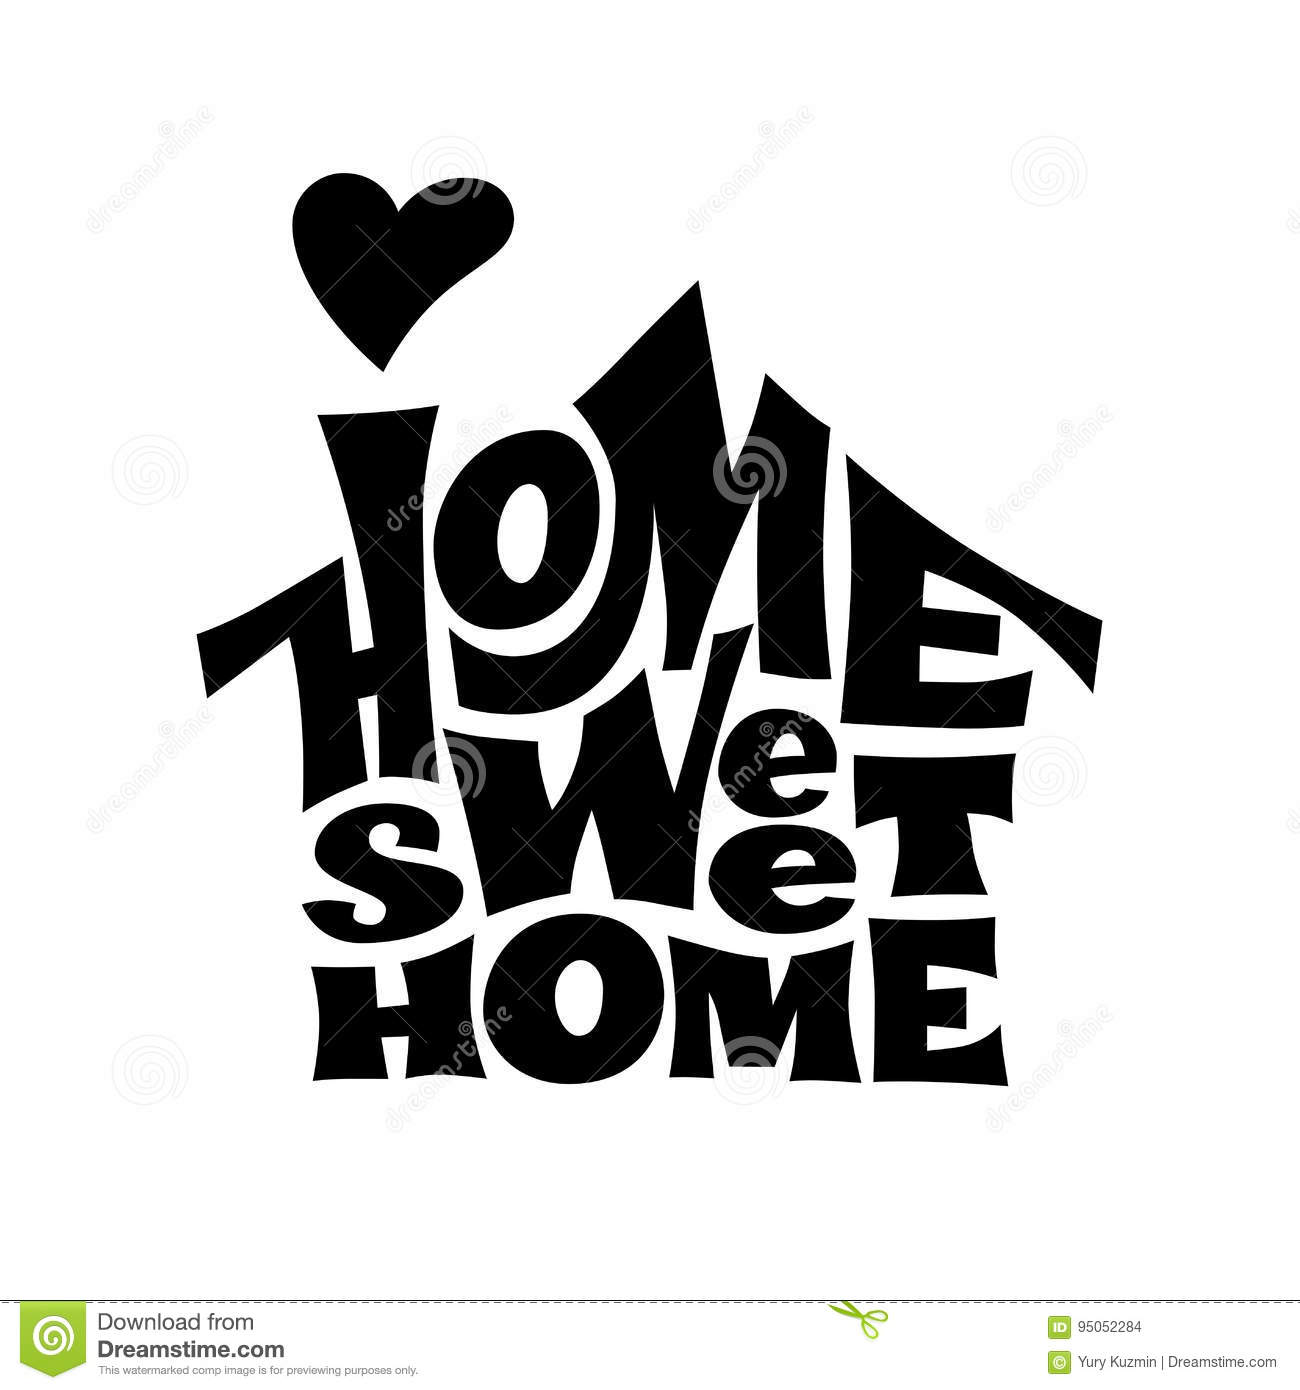 home sweet home images free download